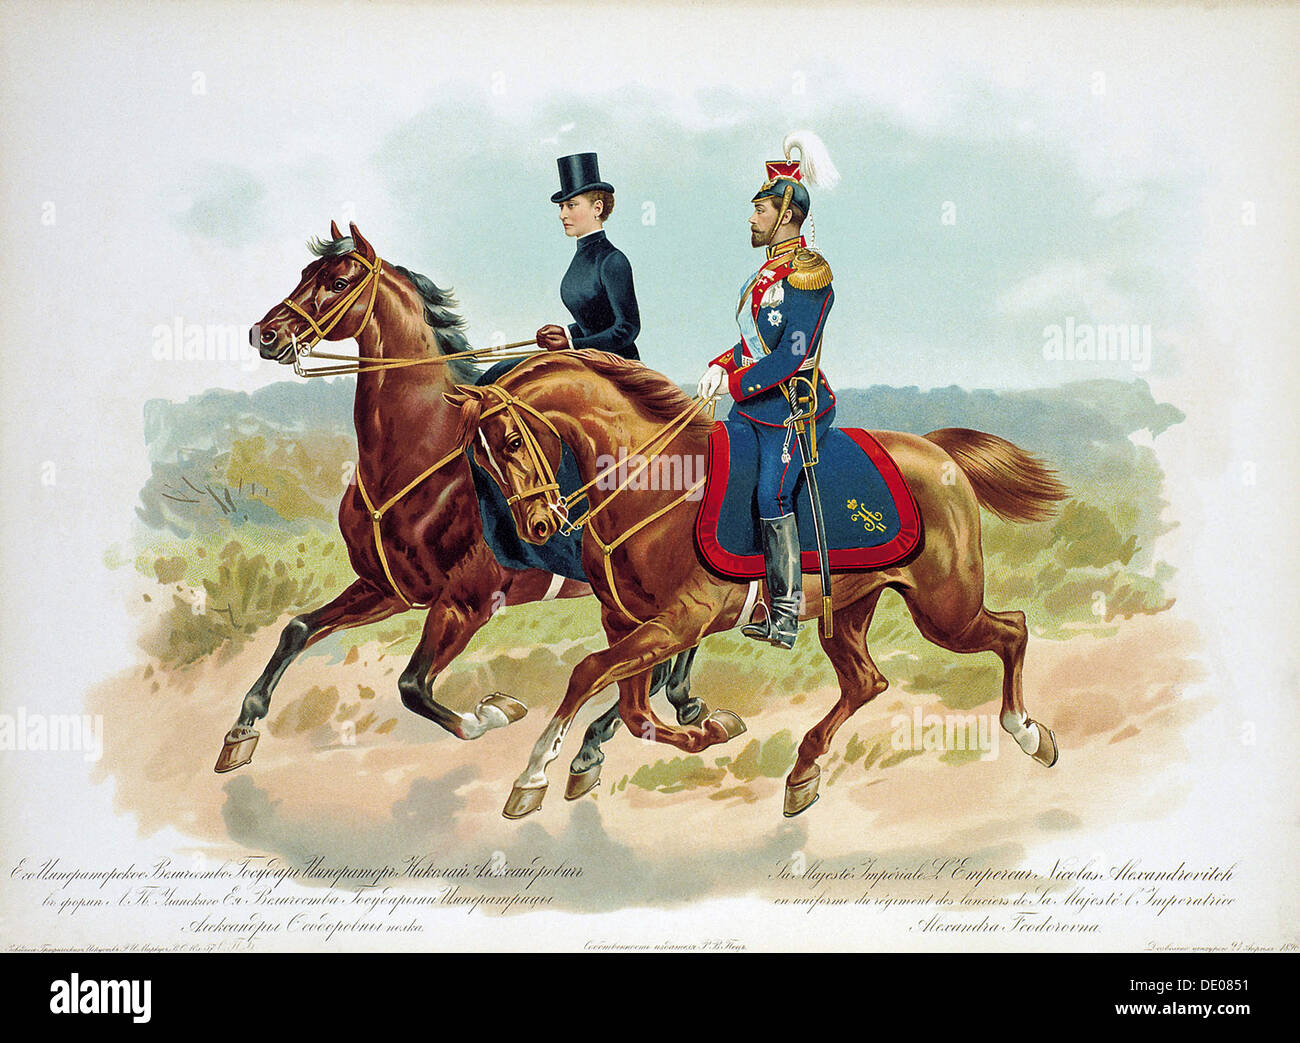 an introduction to the life of nicholas ii the czar of russia from 1896 1917 Nicholas ii, the last czar,  nicholas and alexandra were crowned czar and czarina in may 1896 as the ruler of russia, nicholas resisted calls  in march 1917,.